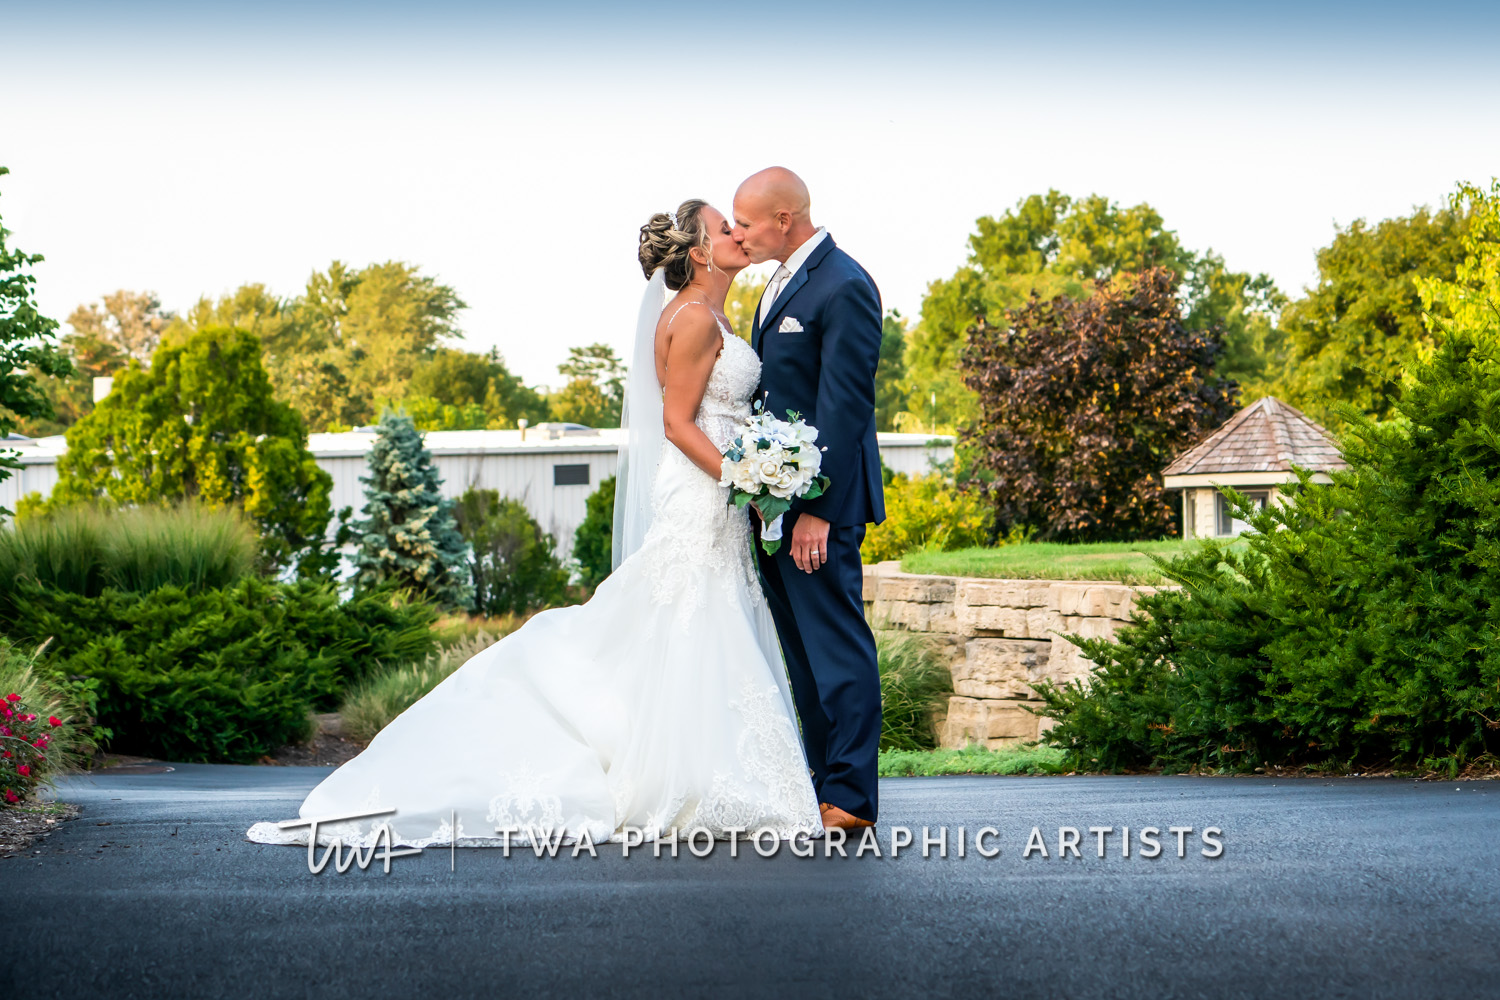 Tammy & Chris | TWA Photography Reviews | Chicago Wedding Photographers